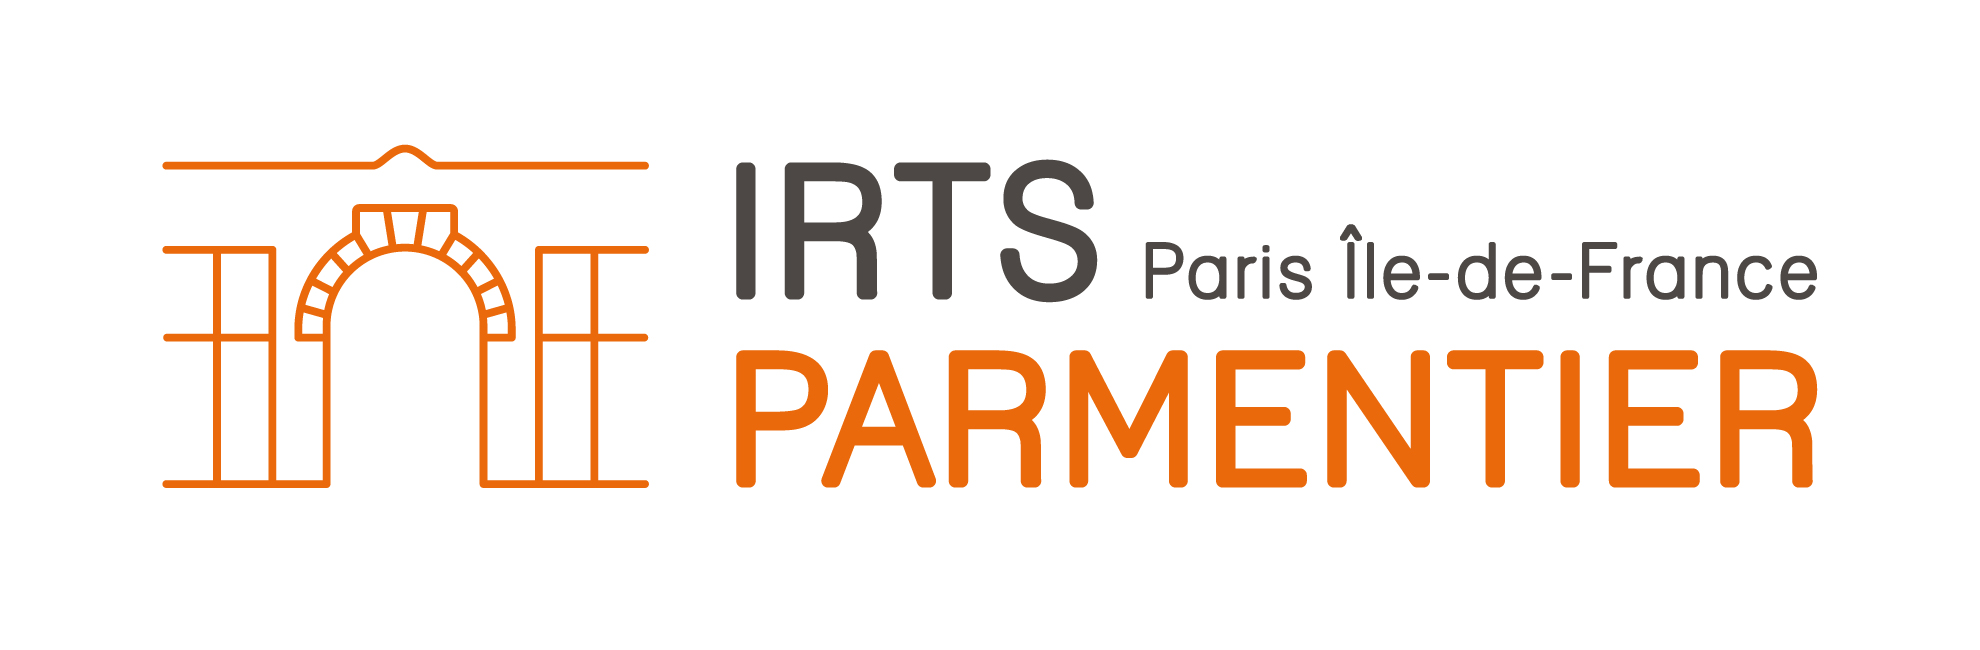 Logo IRTS Paris Ile-de-France